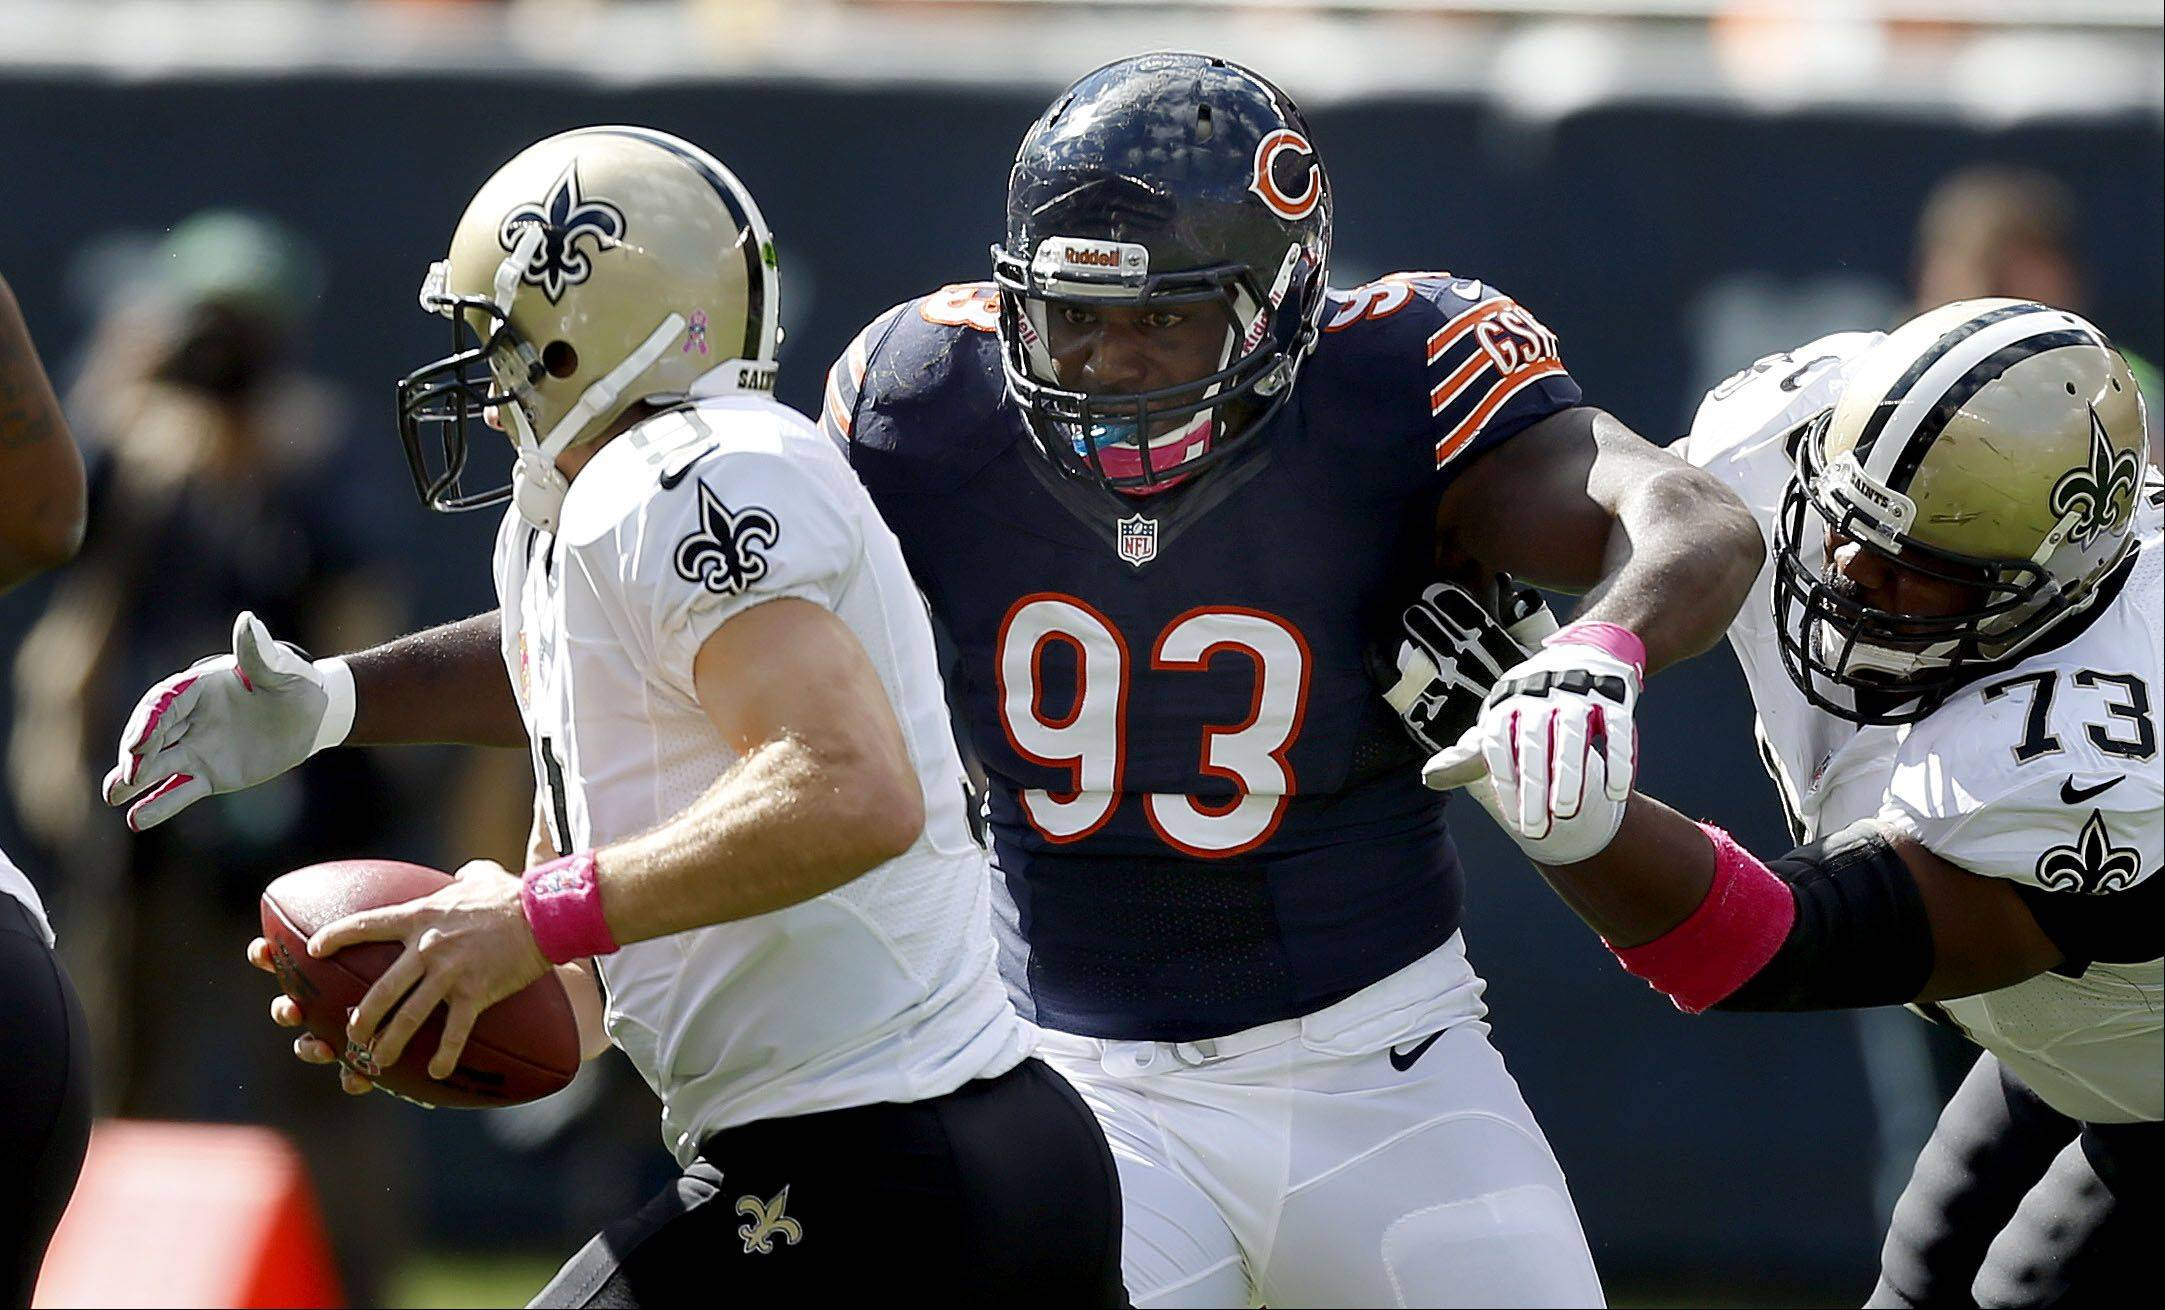 Bears defensive tackle Nate Collins sacks New Orleans Saints quarterback Drew Brees during their 26-18 loss Sunday at Soldier Field in Chicago.